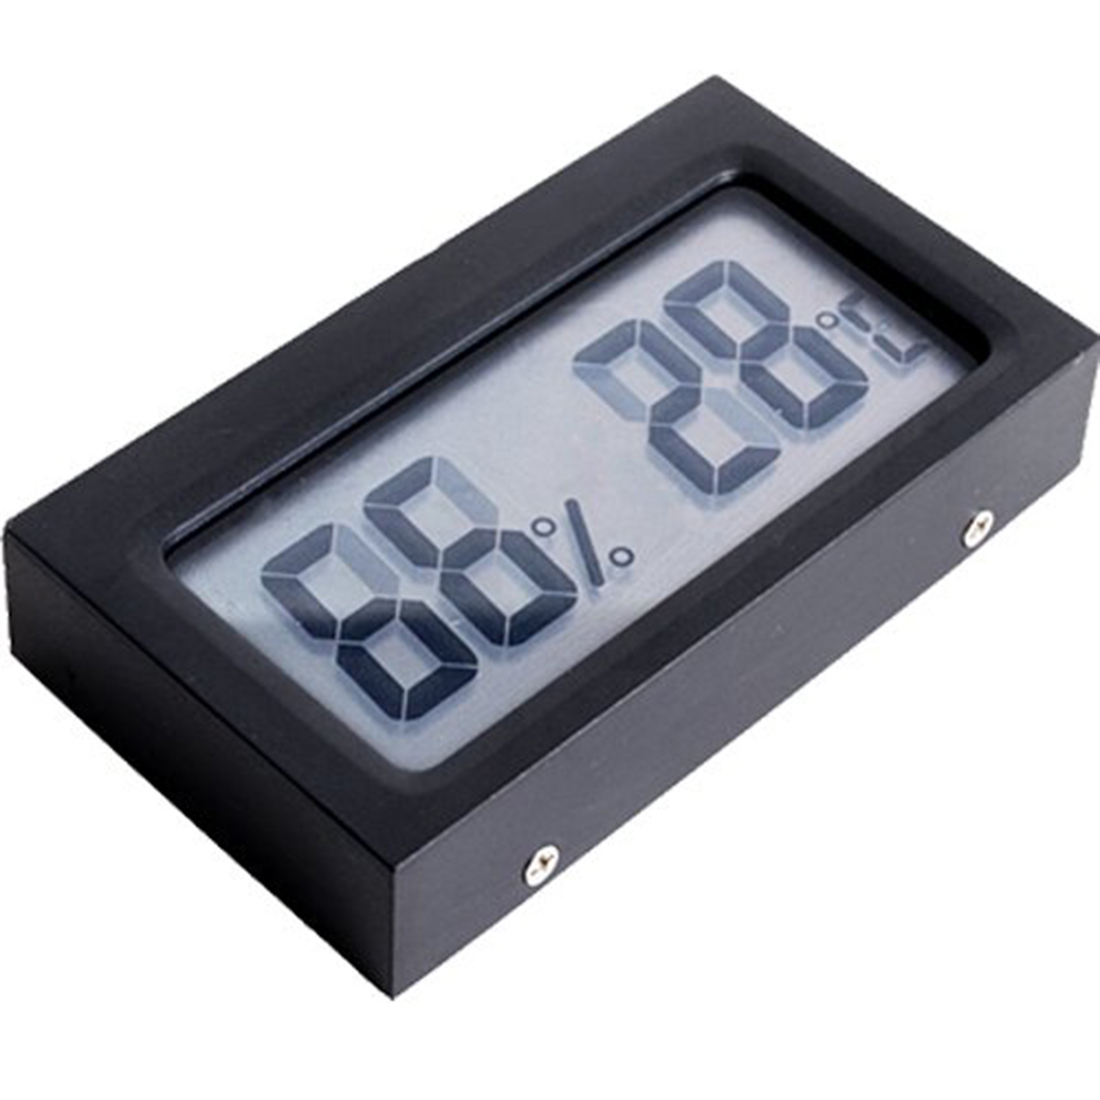 High-accuracy LCD Thermometer Hygrometer Electronic Temperature Humidity Meter Indoor -30C~50C Detector Termometro 20%RH~99%RH mini 2 0 lcd car indoor thermometer hygrometer black 10 c 50 c 20% 95% rh 1 x lr44